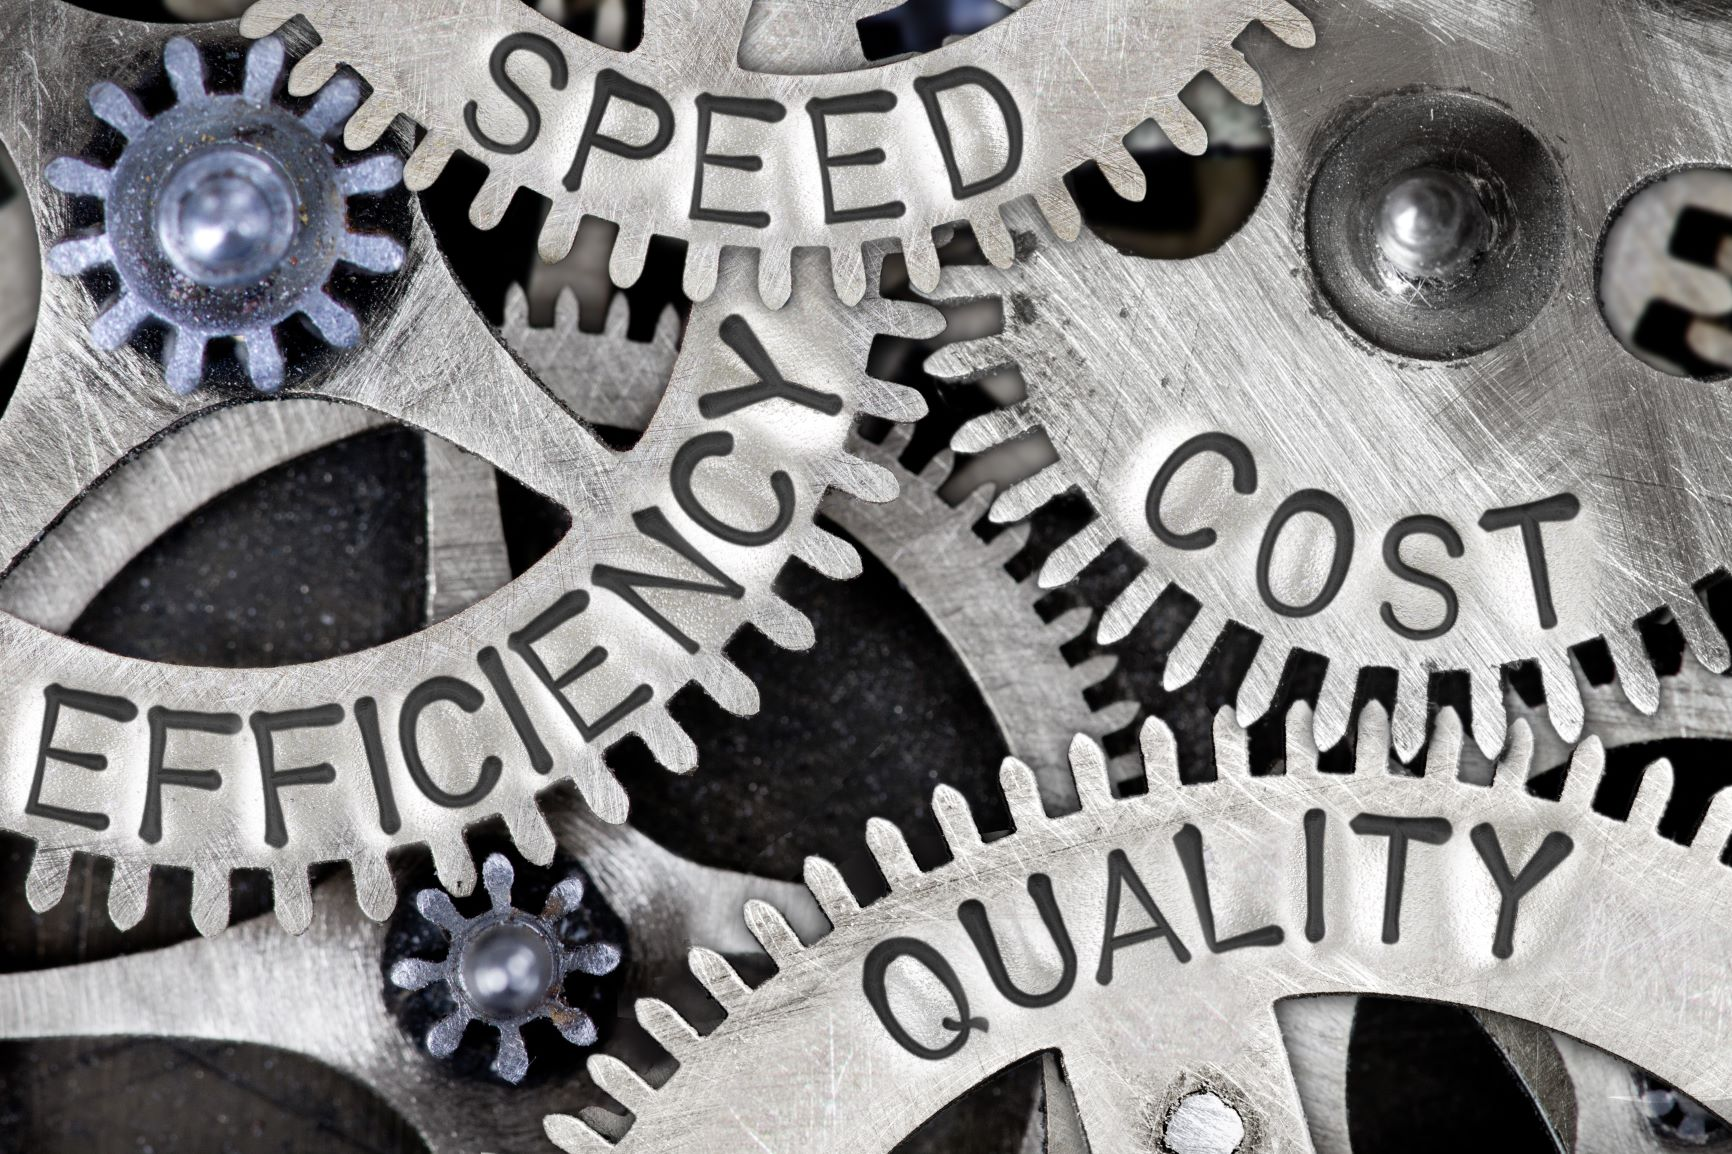 zapir integration improving efficiency, speed, cost, and quality